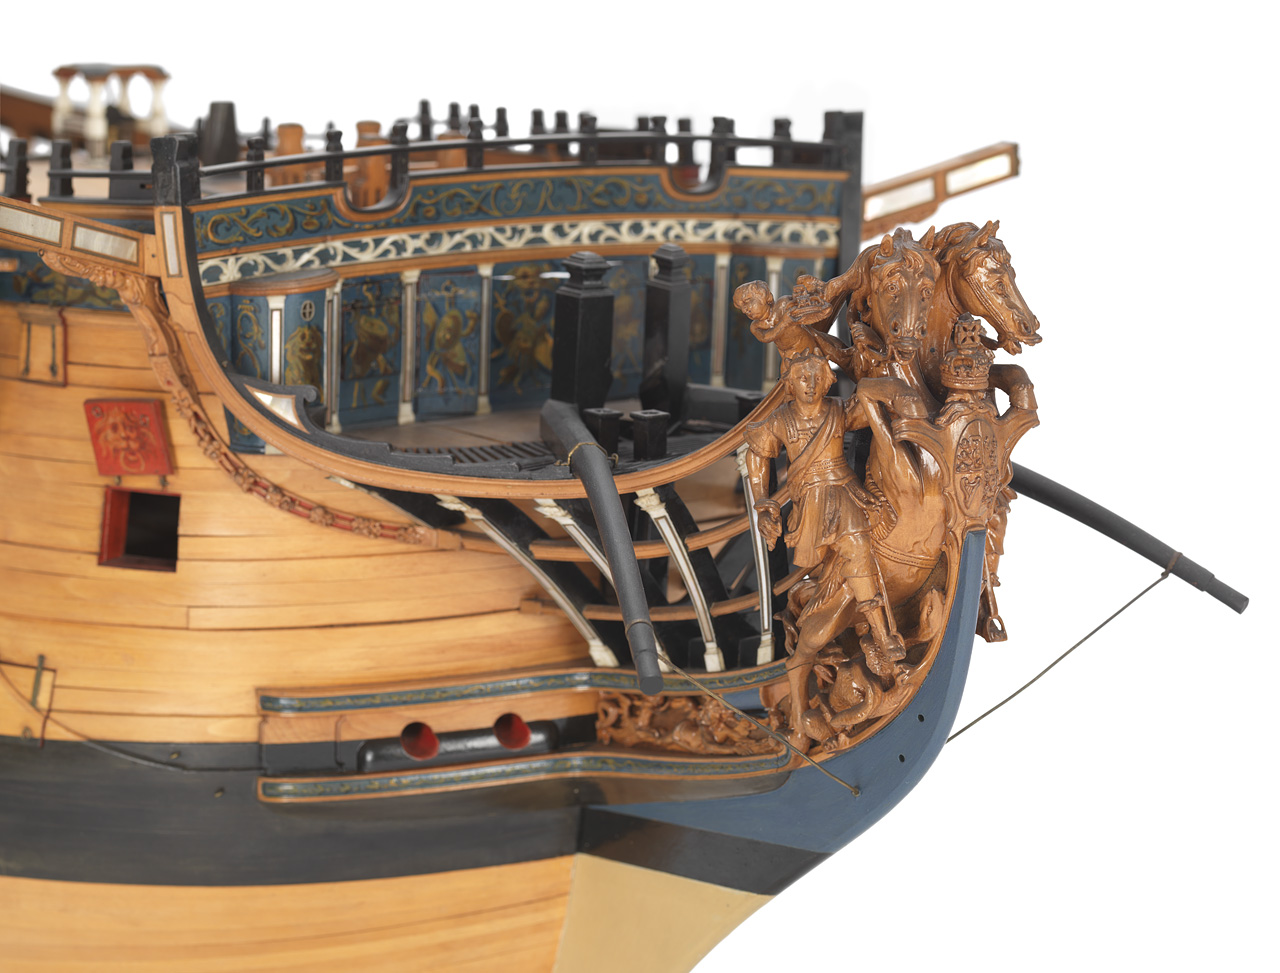 An image showing 'Royal George (1756); Warship; First rate; 100 guns - Figurehead'